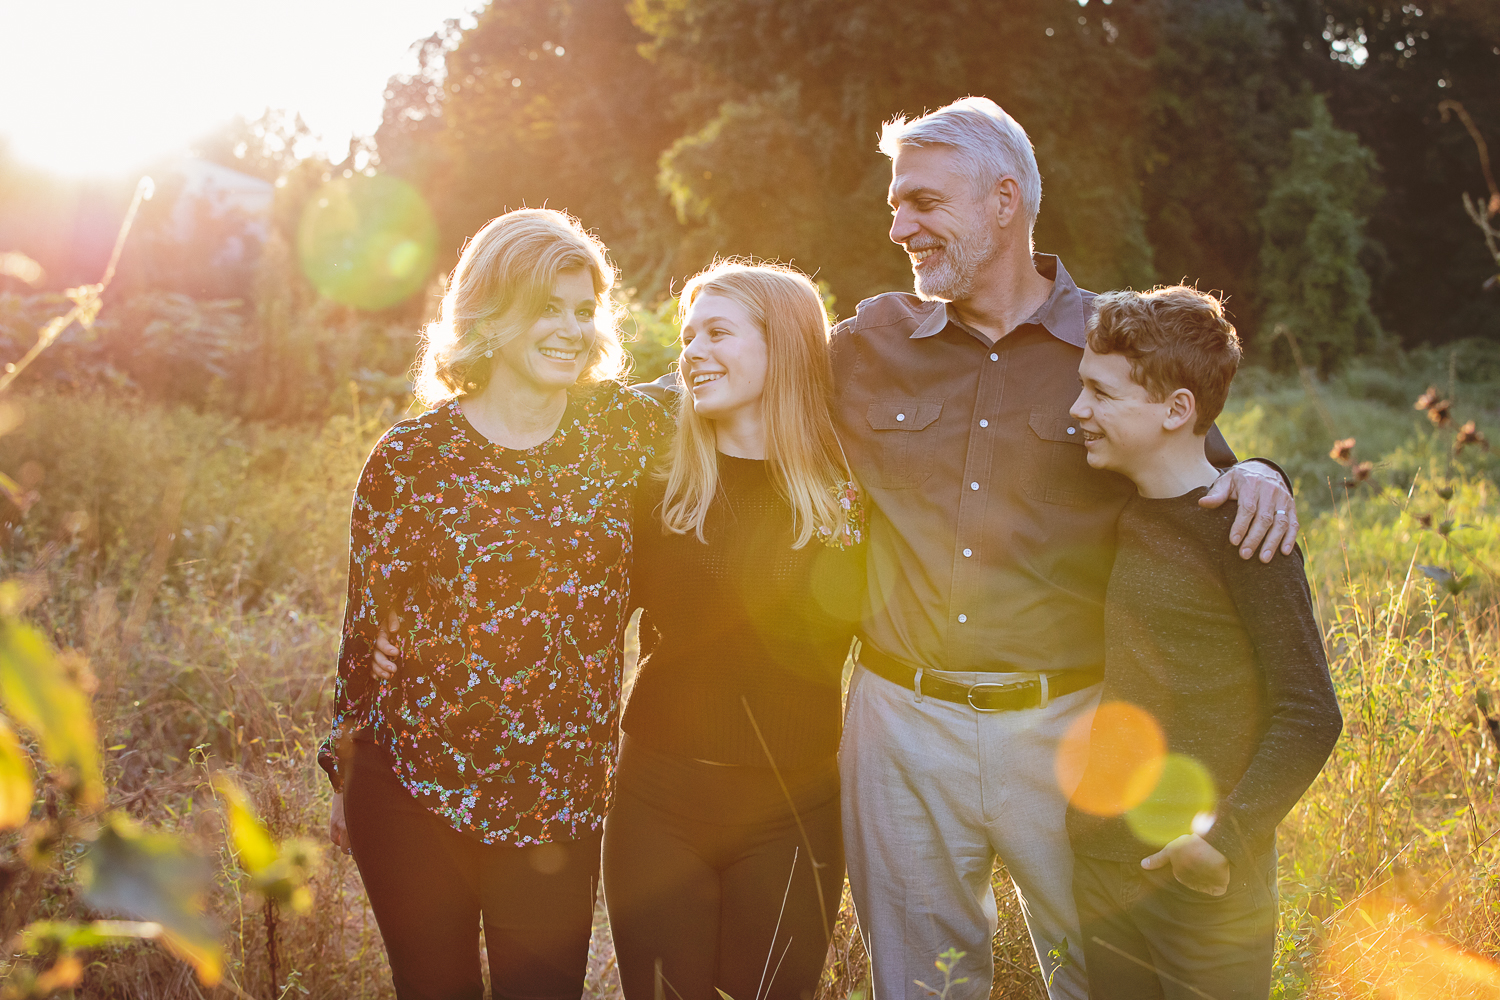 Photograph of a family of four with intense sun flare at golden hour